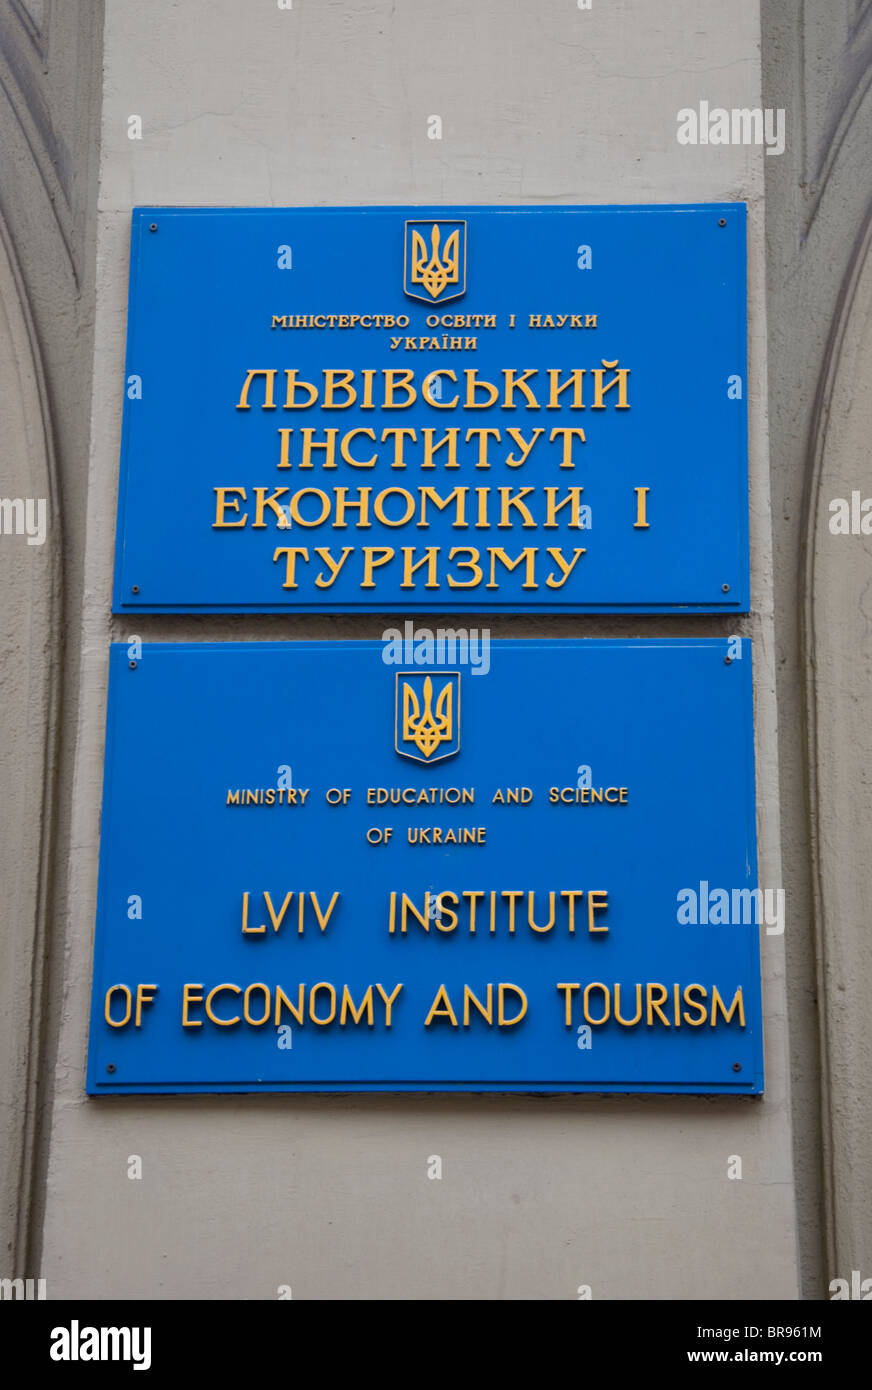 Ministry of Science and Education of Ukraine, Institute of Economics and Tourism - Stock Image